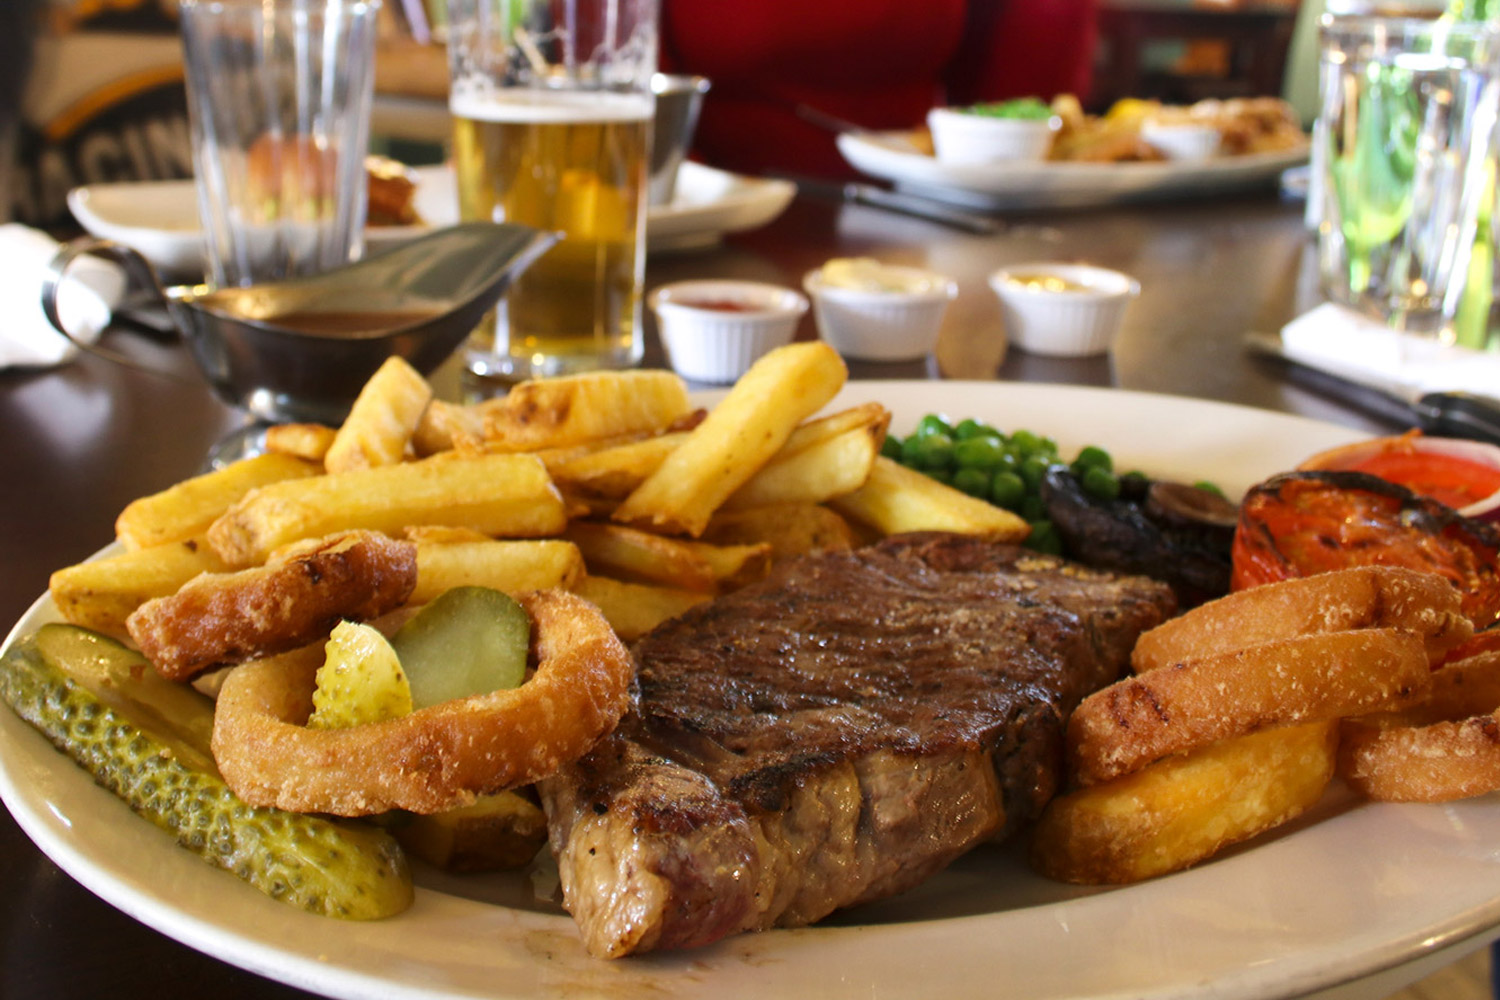 Quality steak & chips served daily in the restaurant at The Berrylands Pub Restaurant, Surbiton